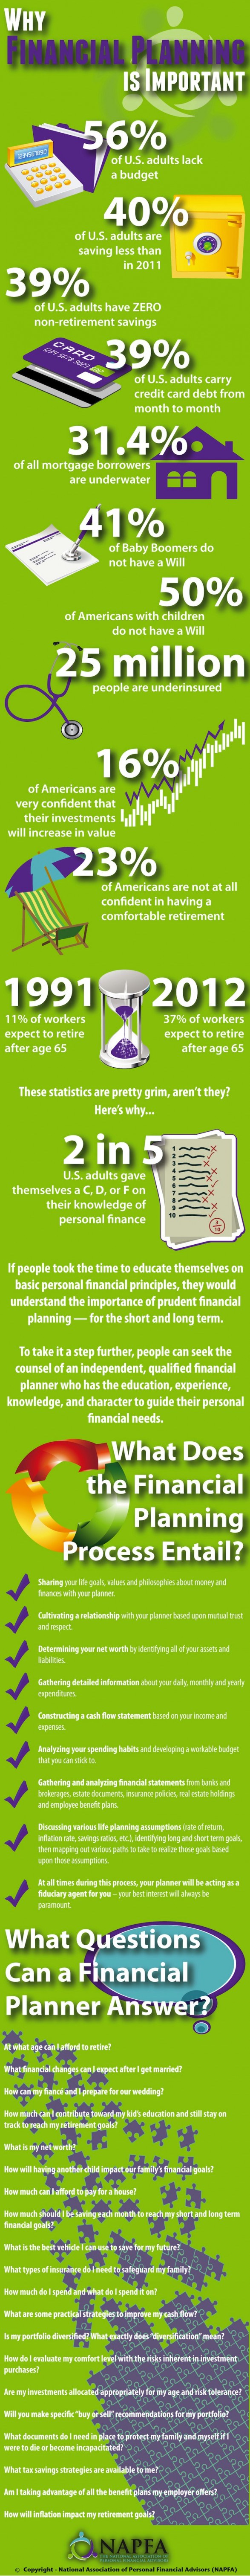 Why Financial Planning Is Important